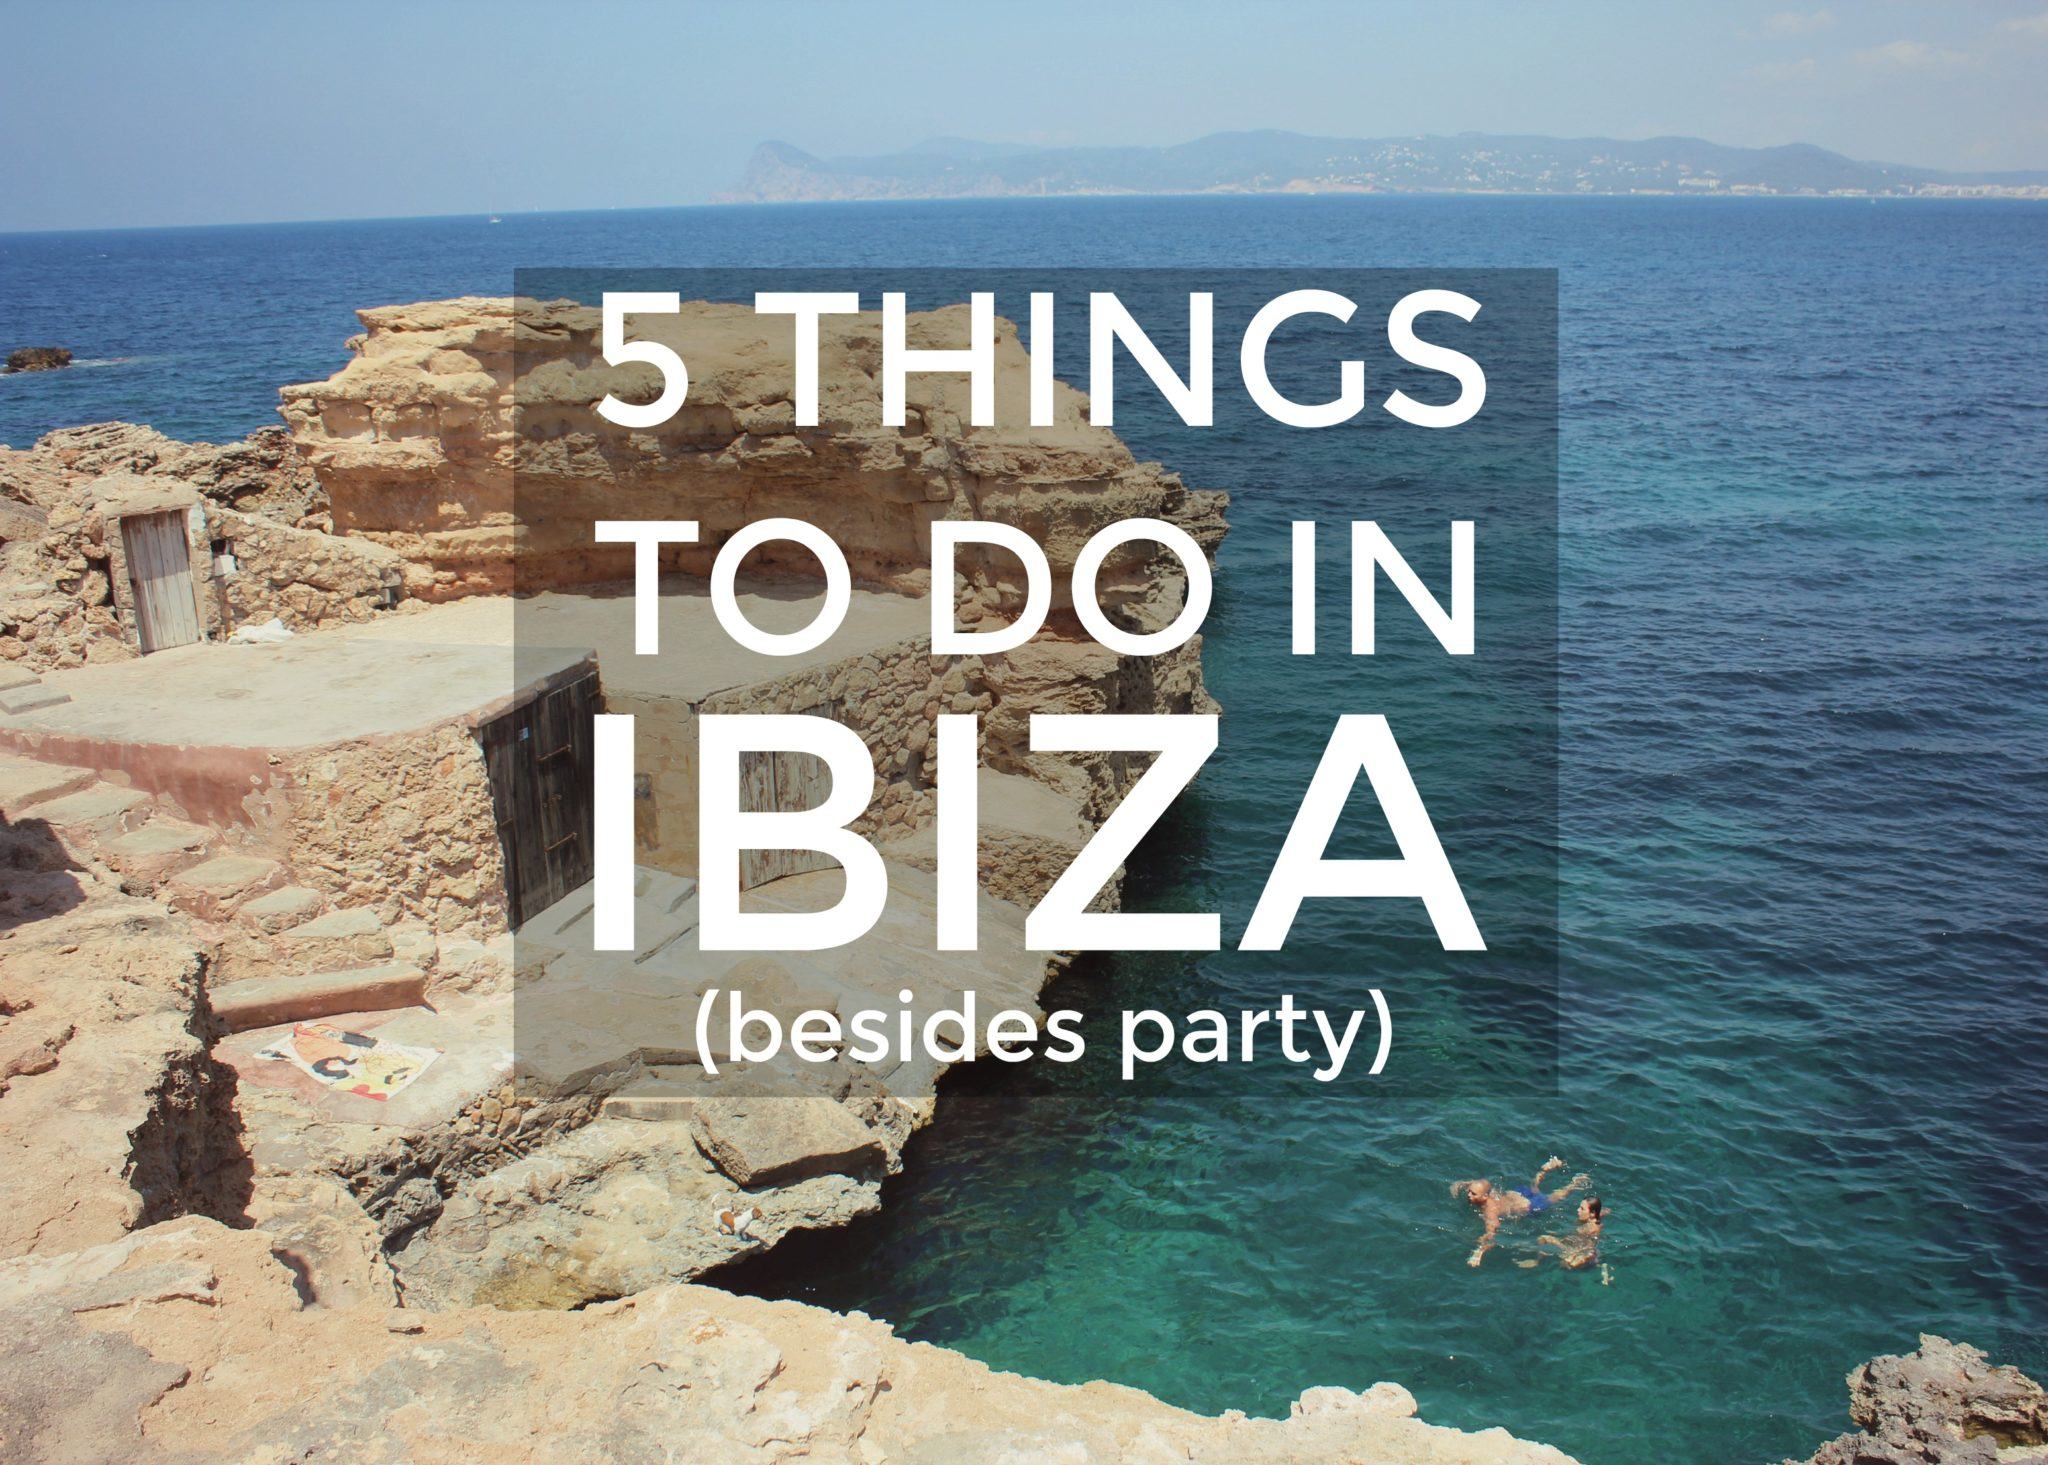 things to do in Ibiza besides party